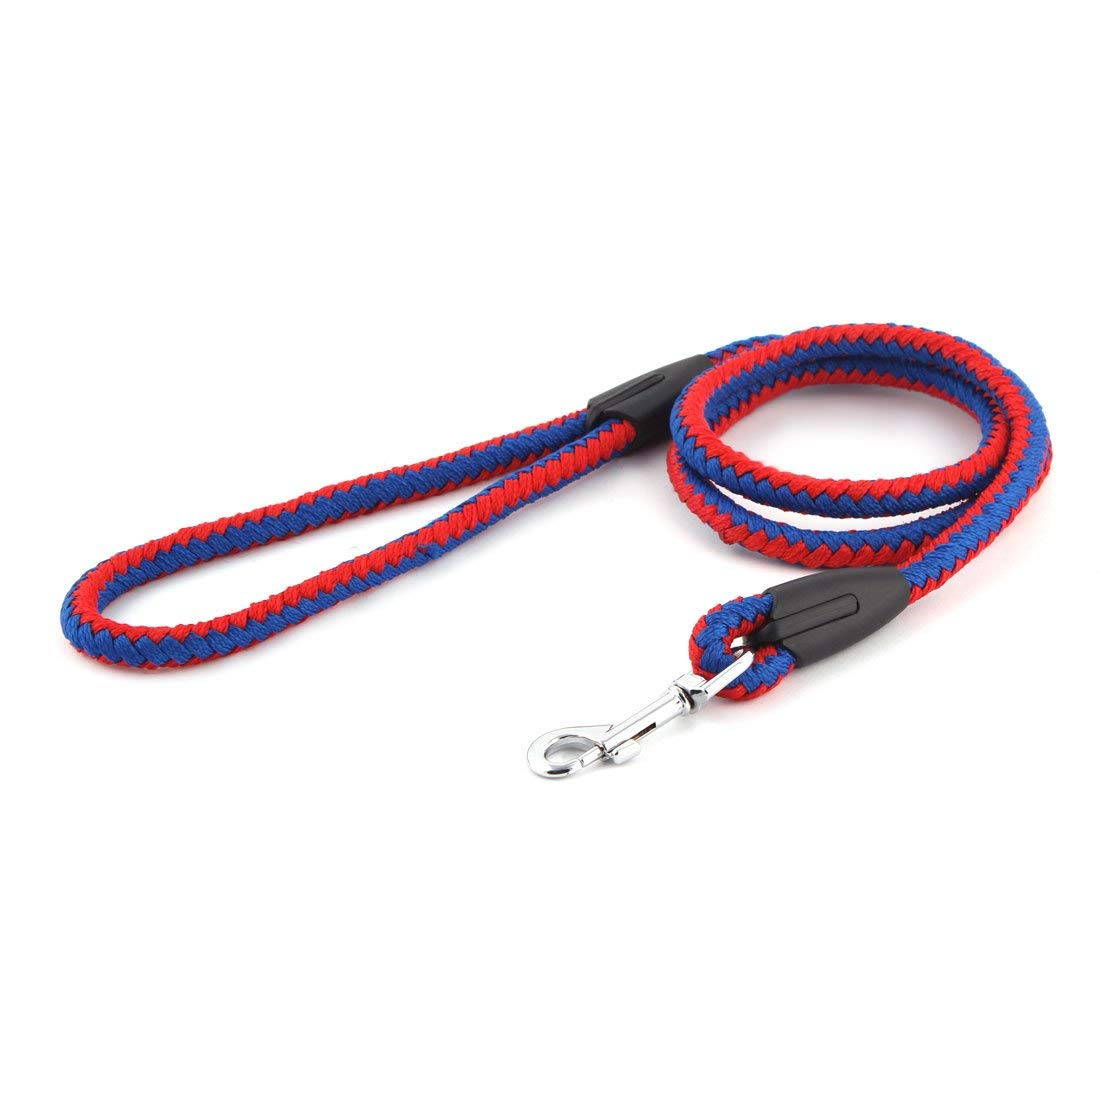 Nylon Pet Dog Round Rope Hook Type Durable Leash Strap Drawstring Red bluee